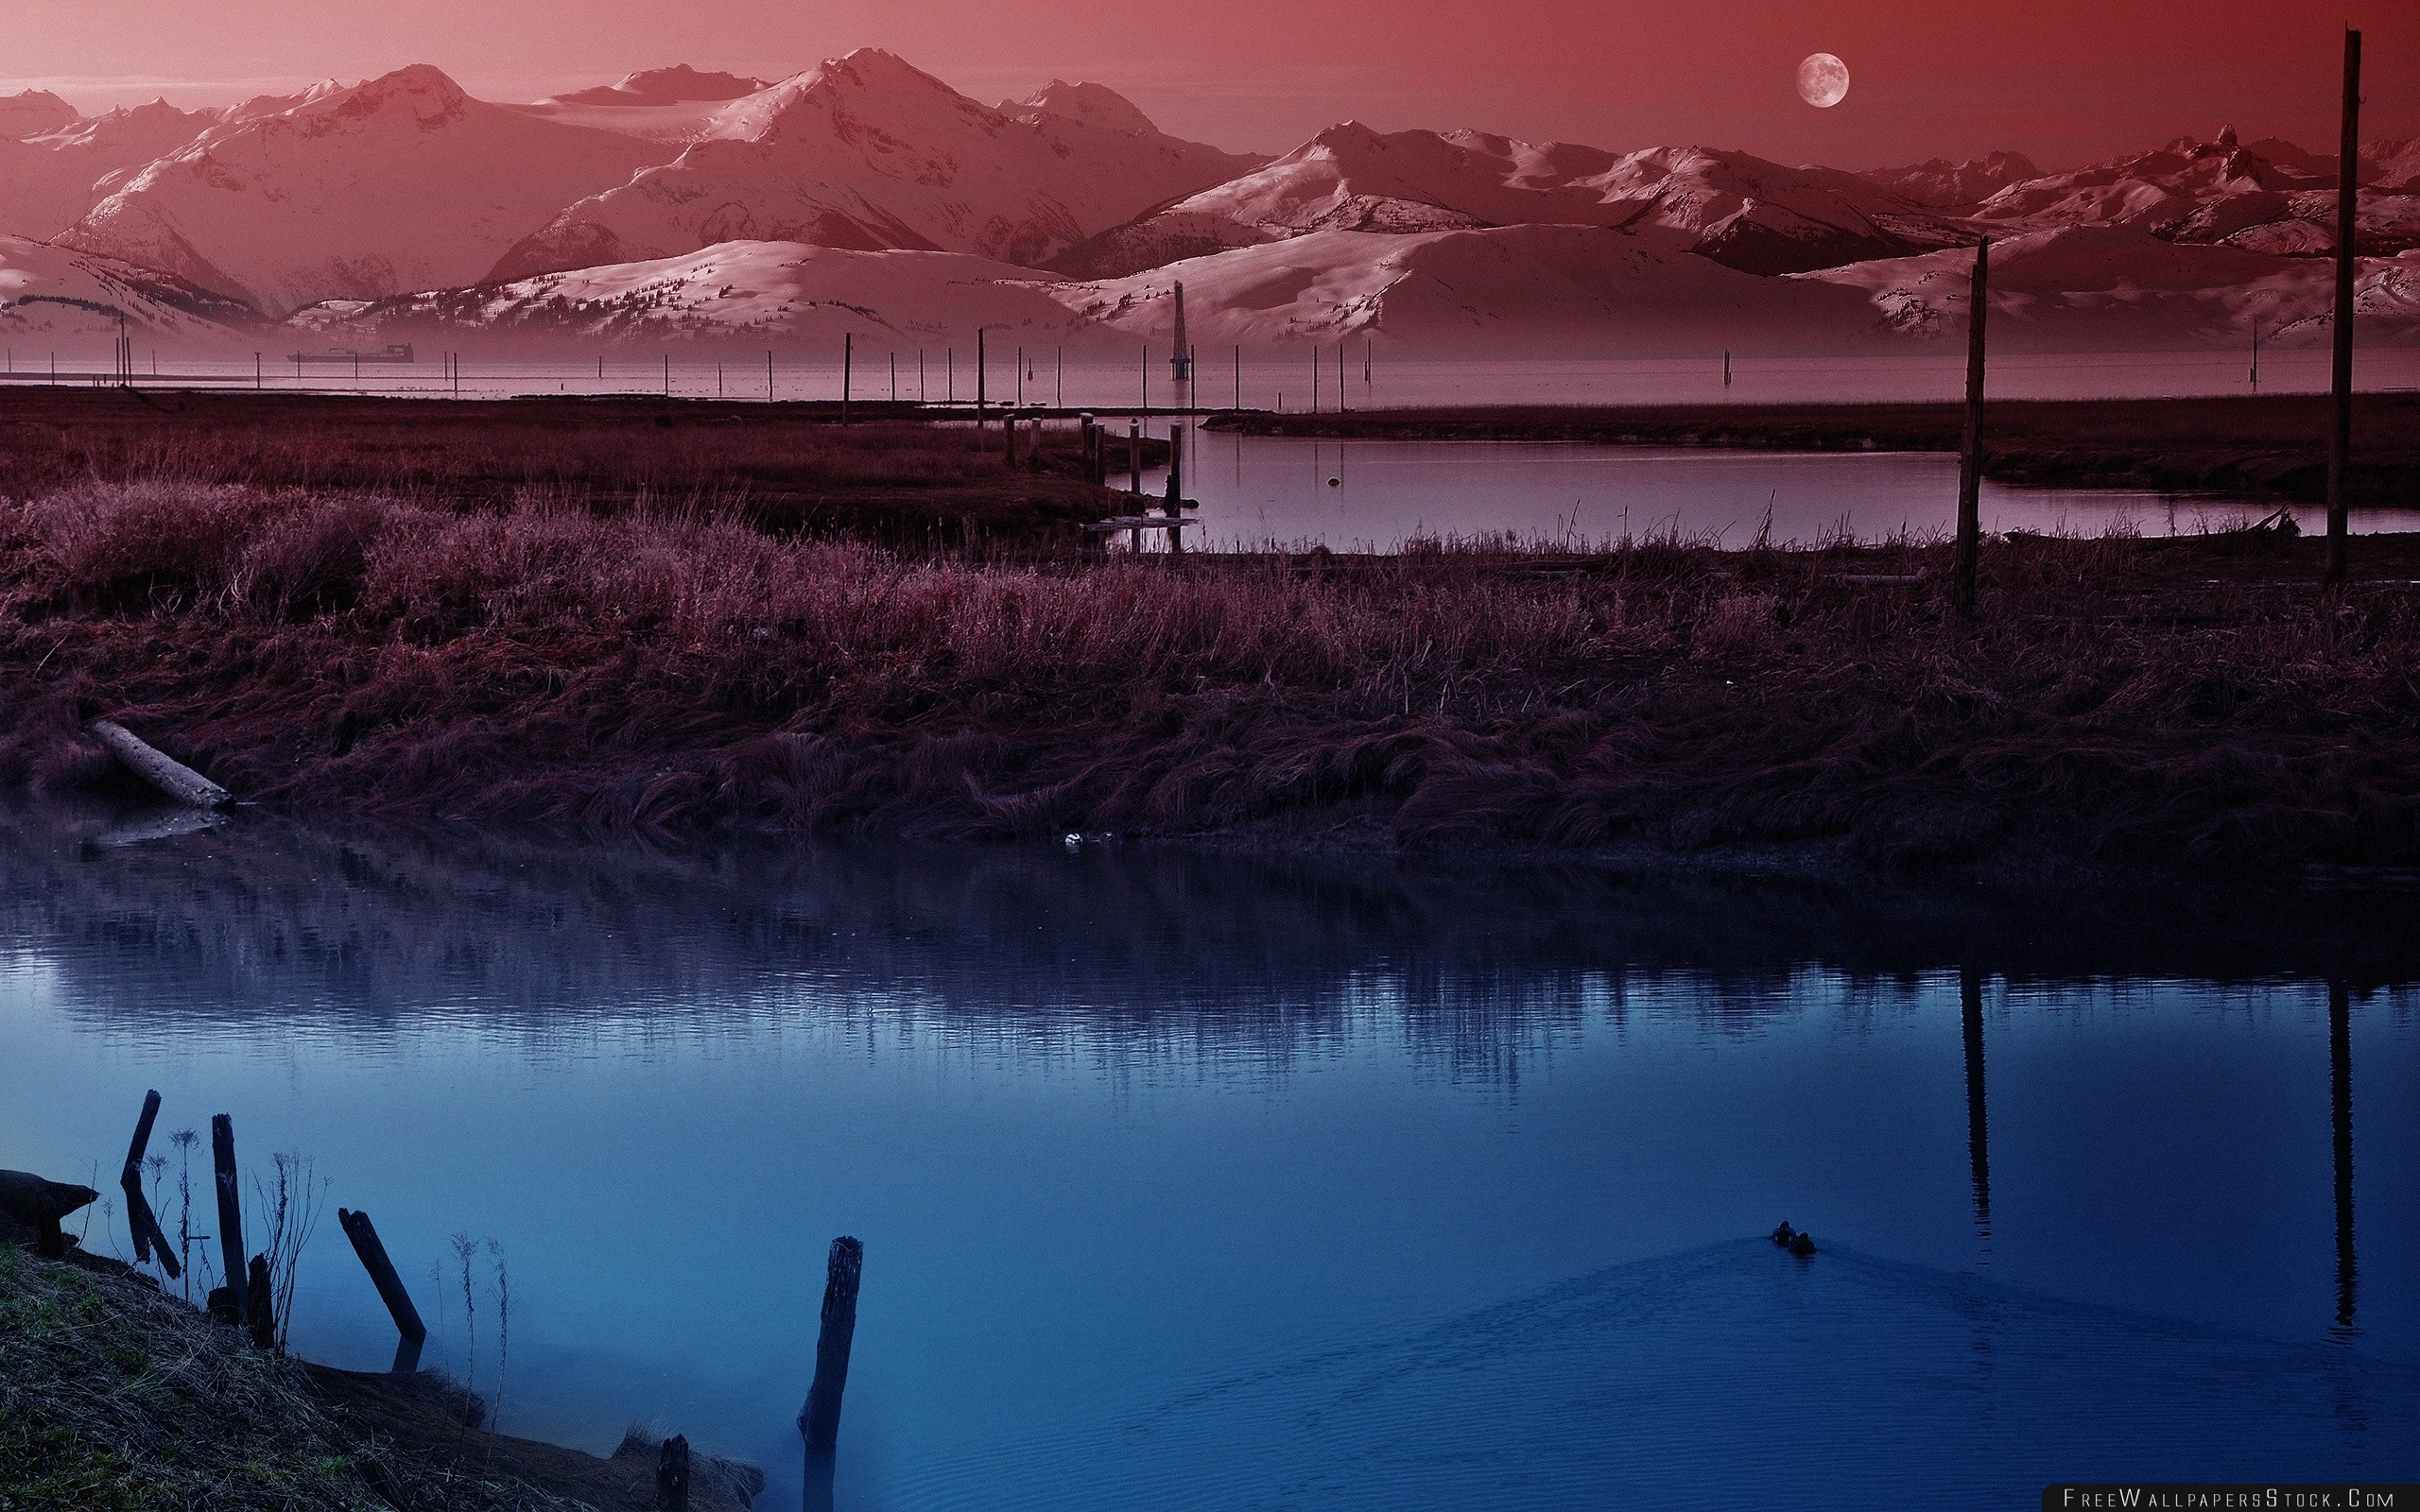 Download Free Wallpaper Moon Sky Pond Wefts Evening Twilight Silence